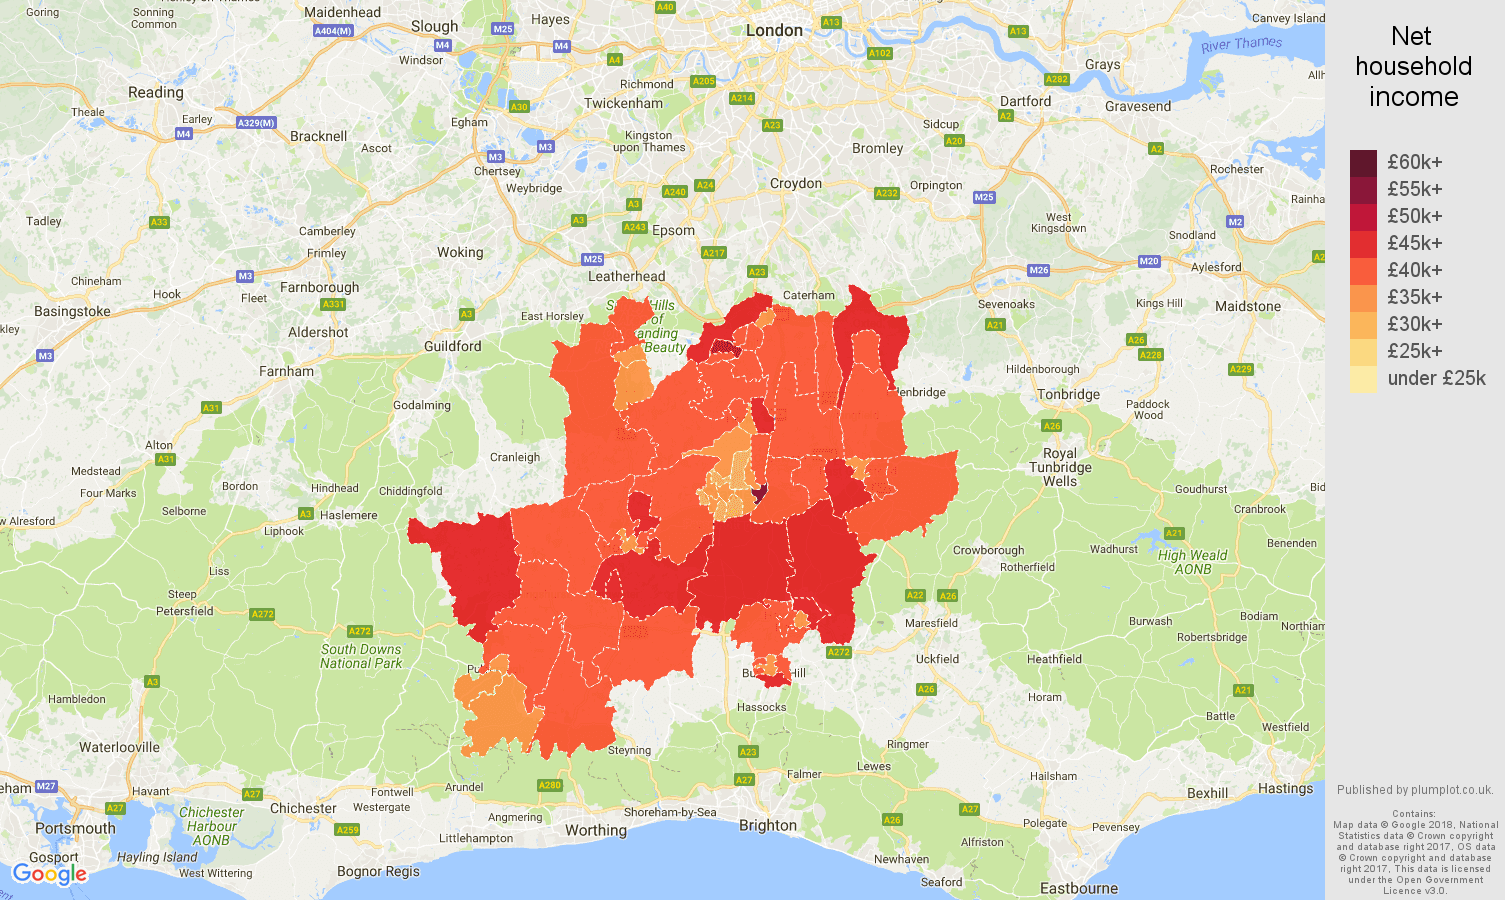 Redhill net household income map